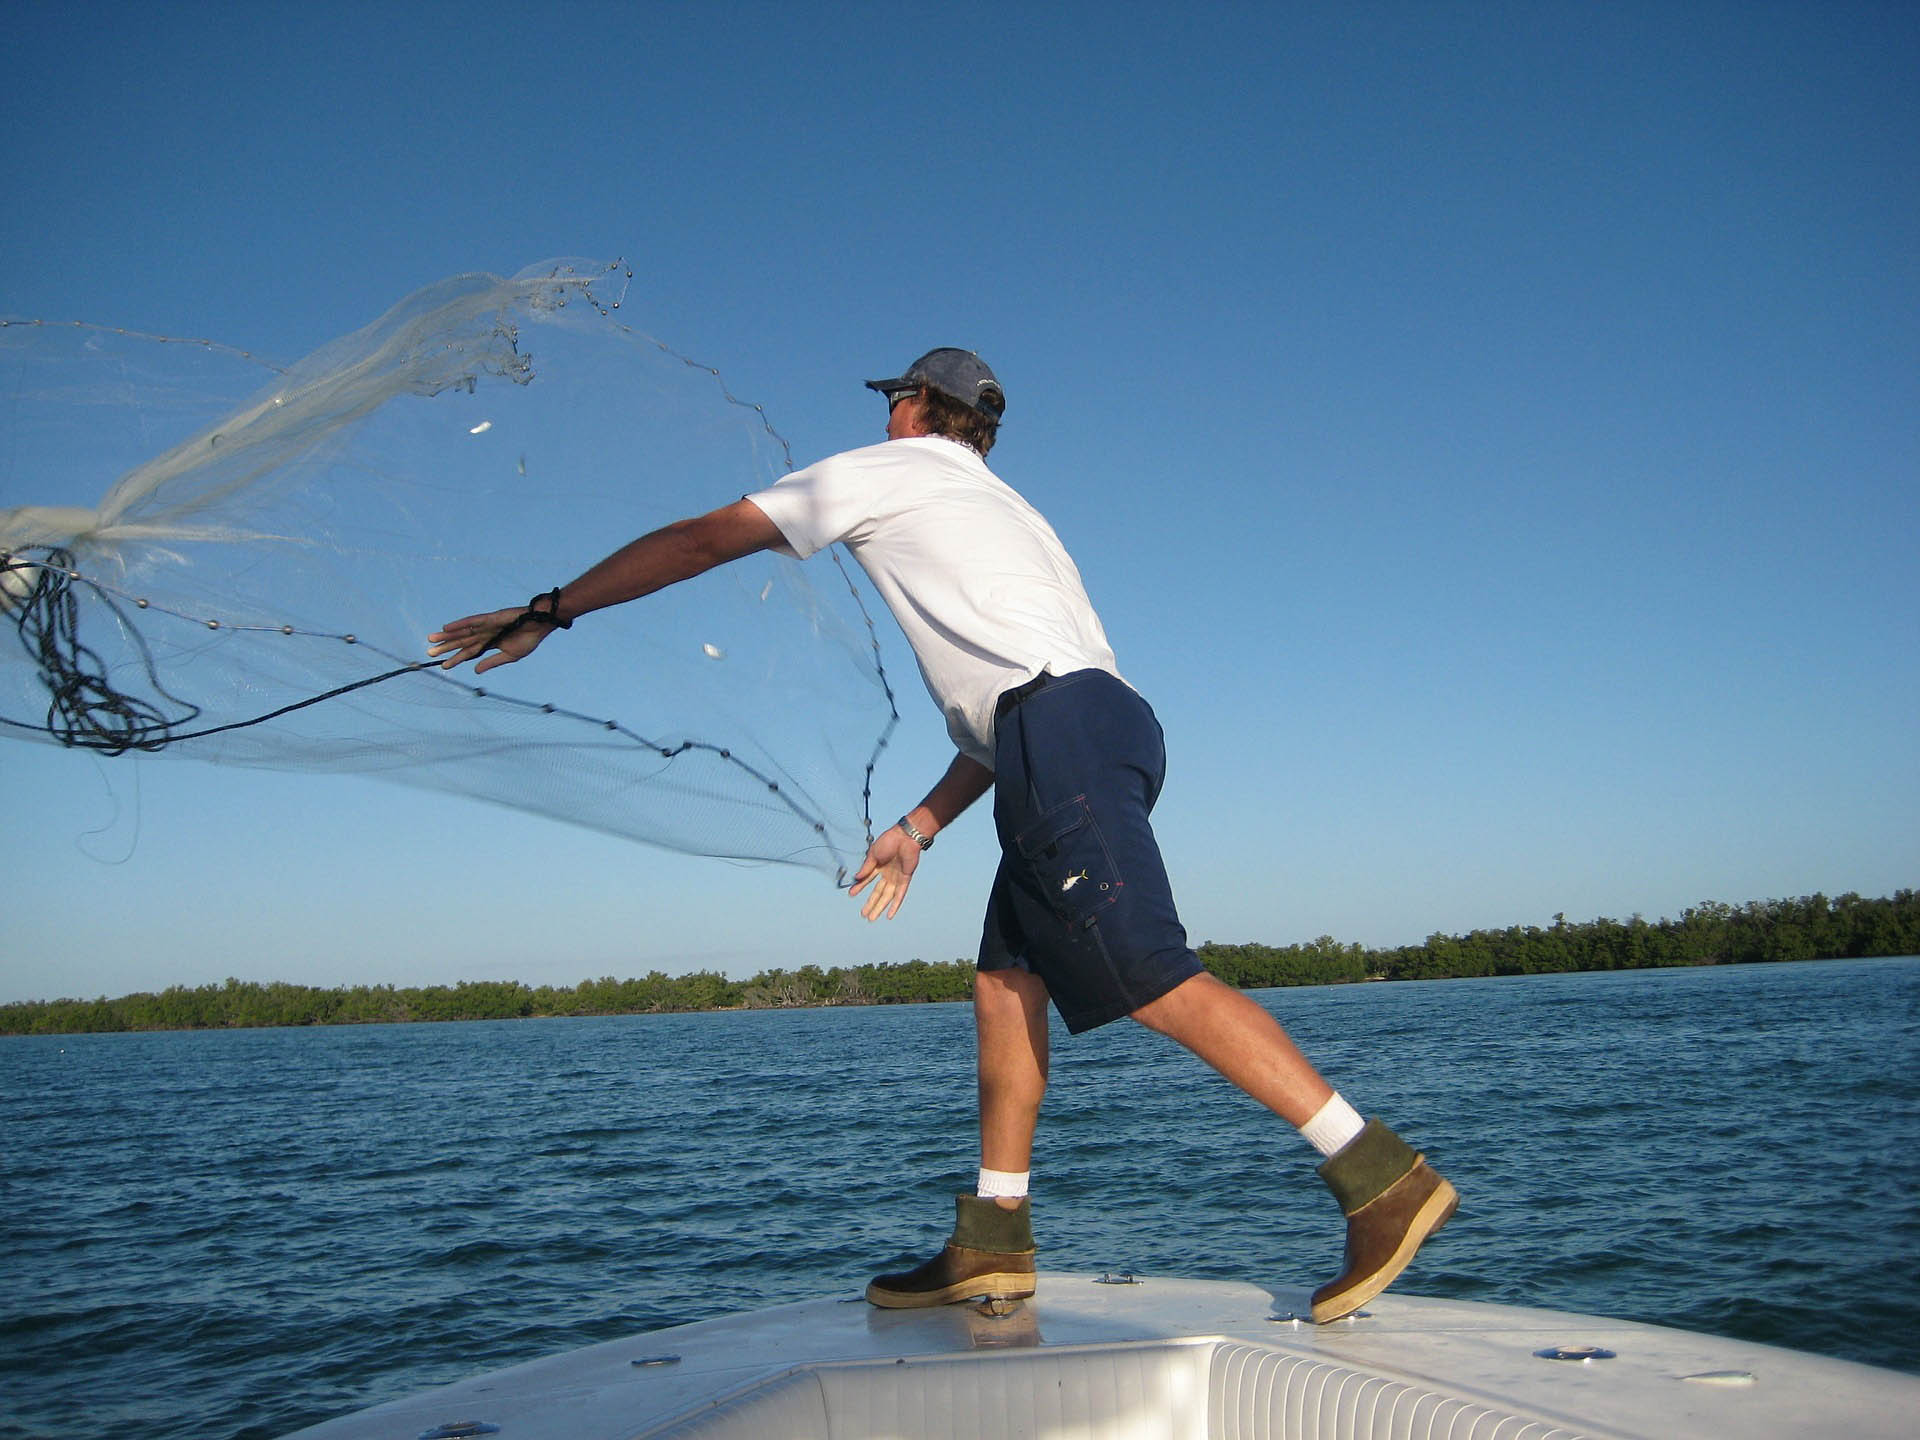 A fisherman casts a net over the side of a boat.